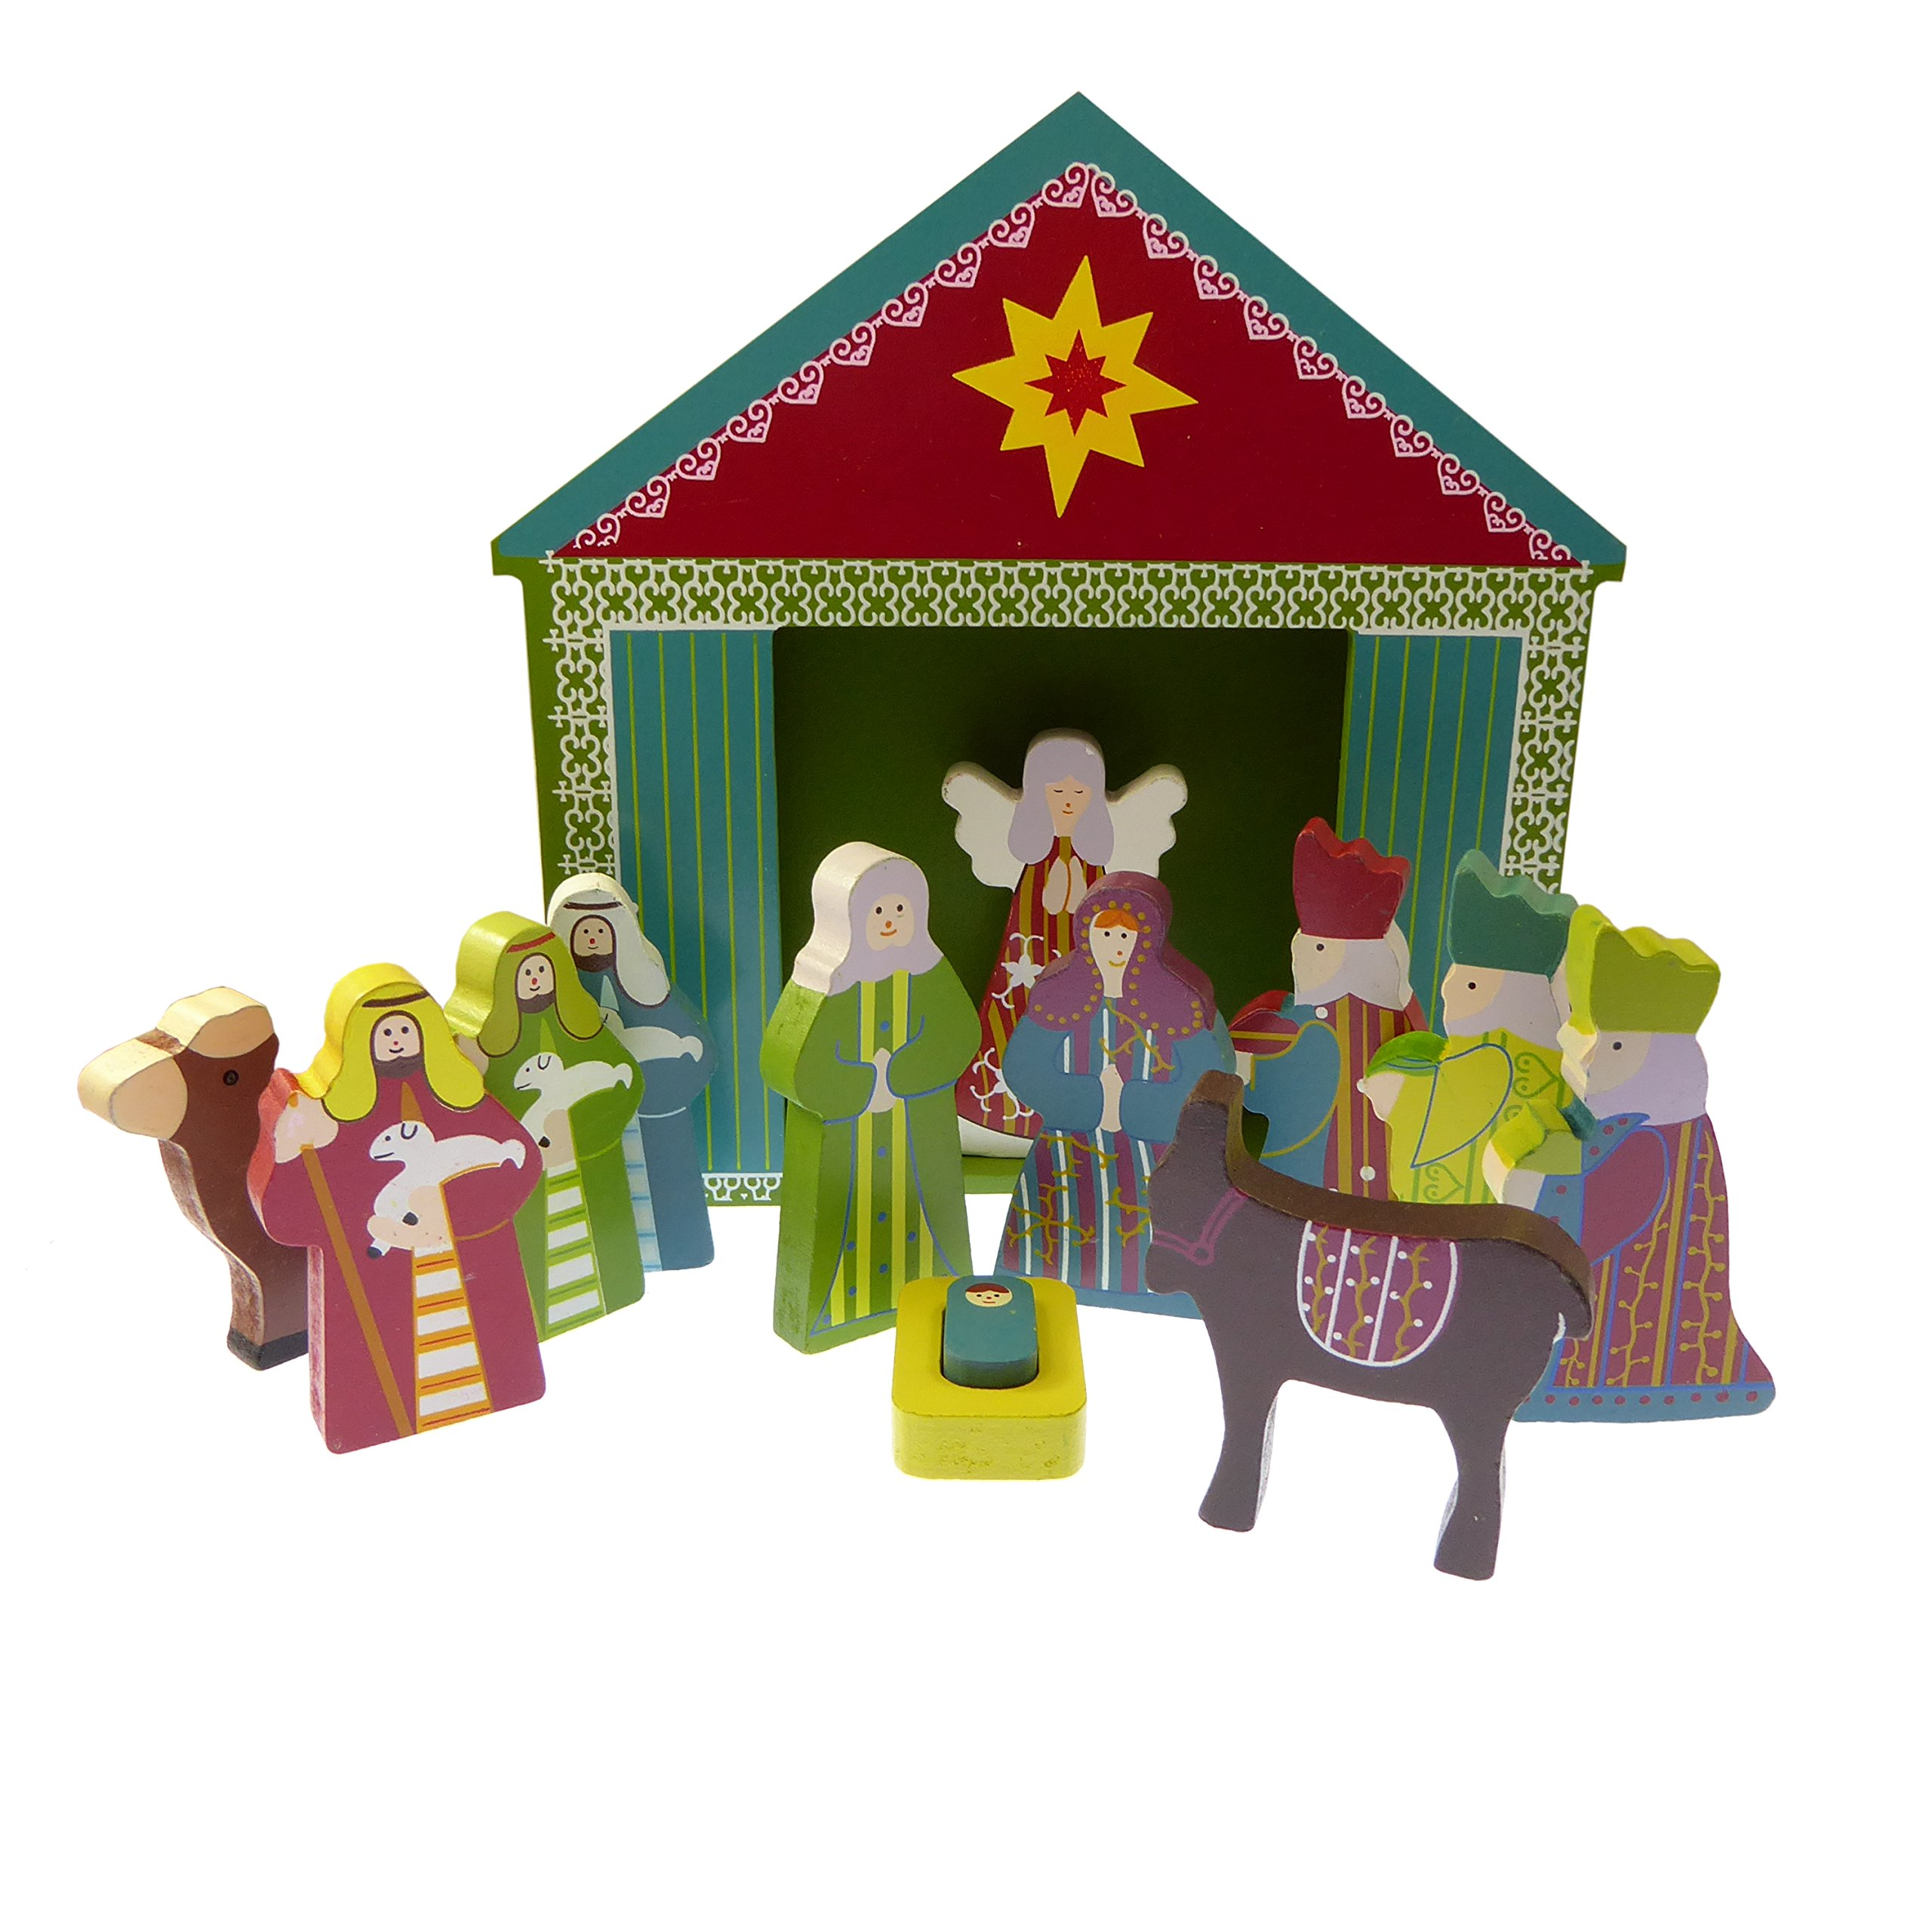 Children's Christmas Nativity scene set ornament wood shed Jesus 13 pieces